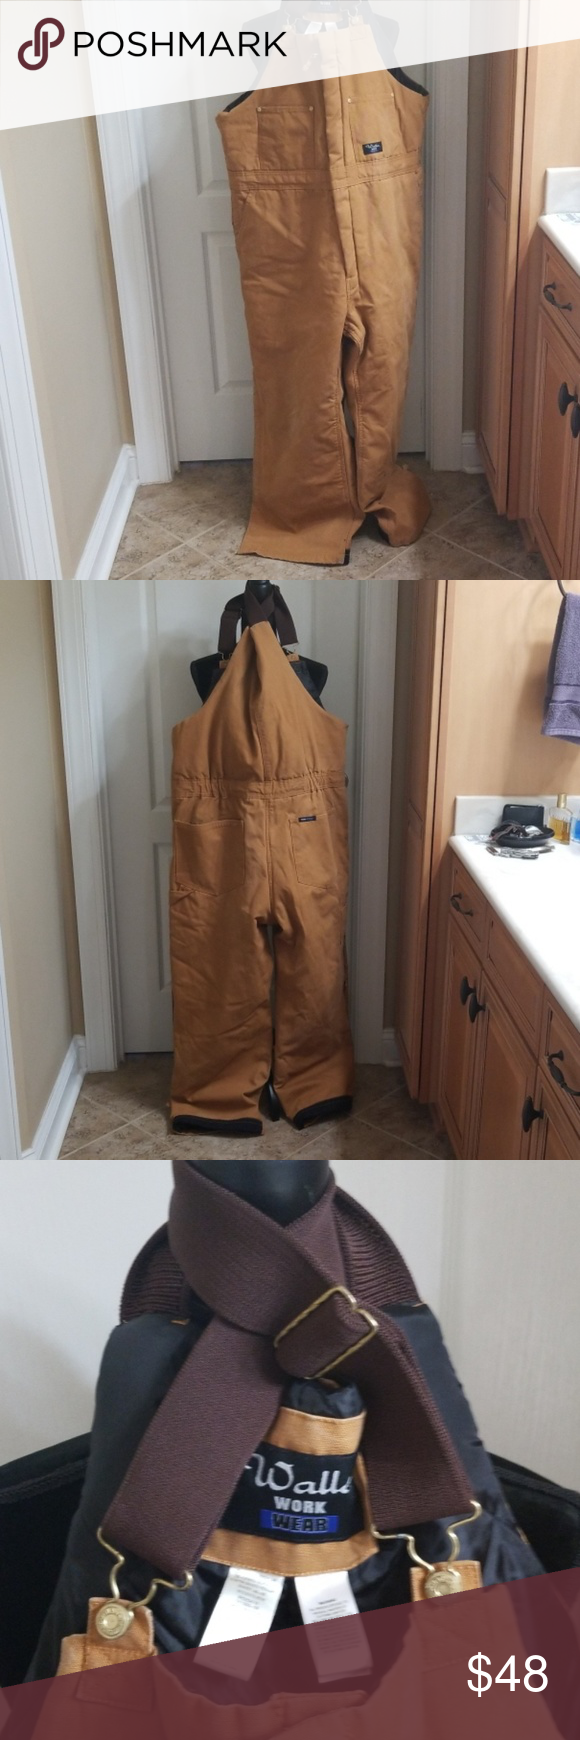 insulated coveralls walls brand insulated coveralls on walls workwear insulated coveralls id=17676